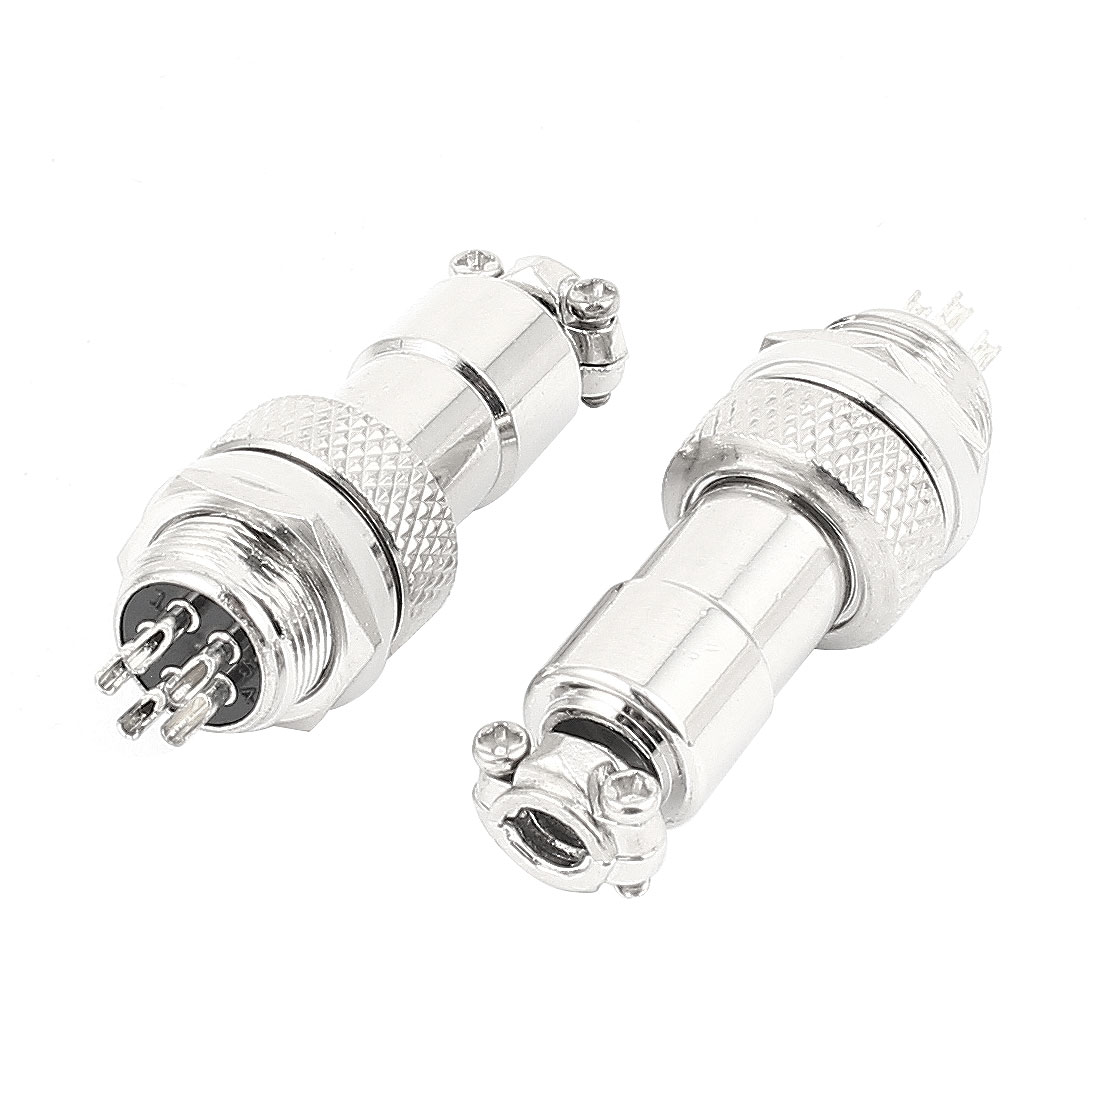 2 Sets Screw Aviation Connector Male Female RS765/M12 12mm 5 Pin